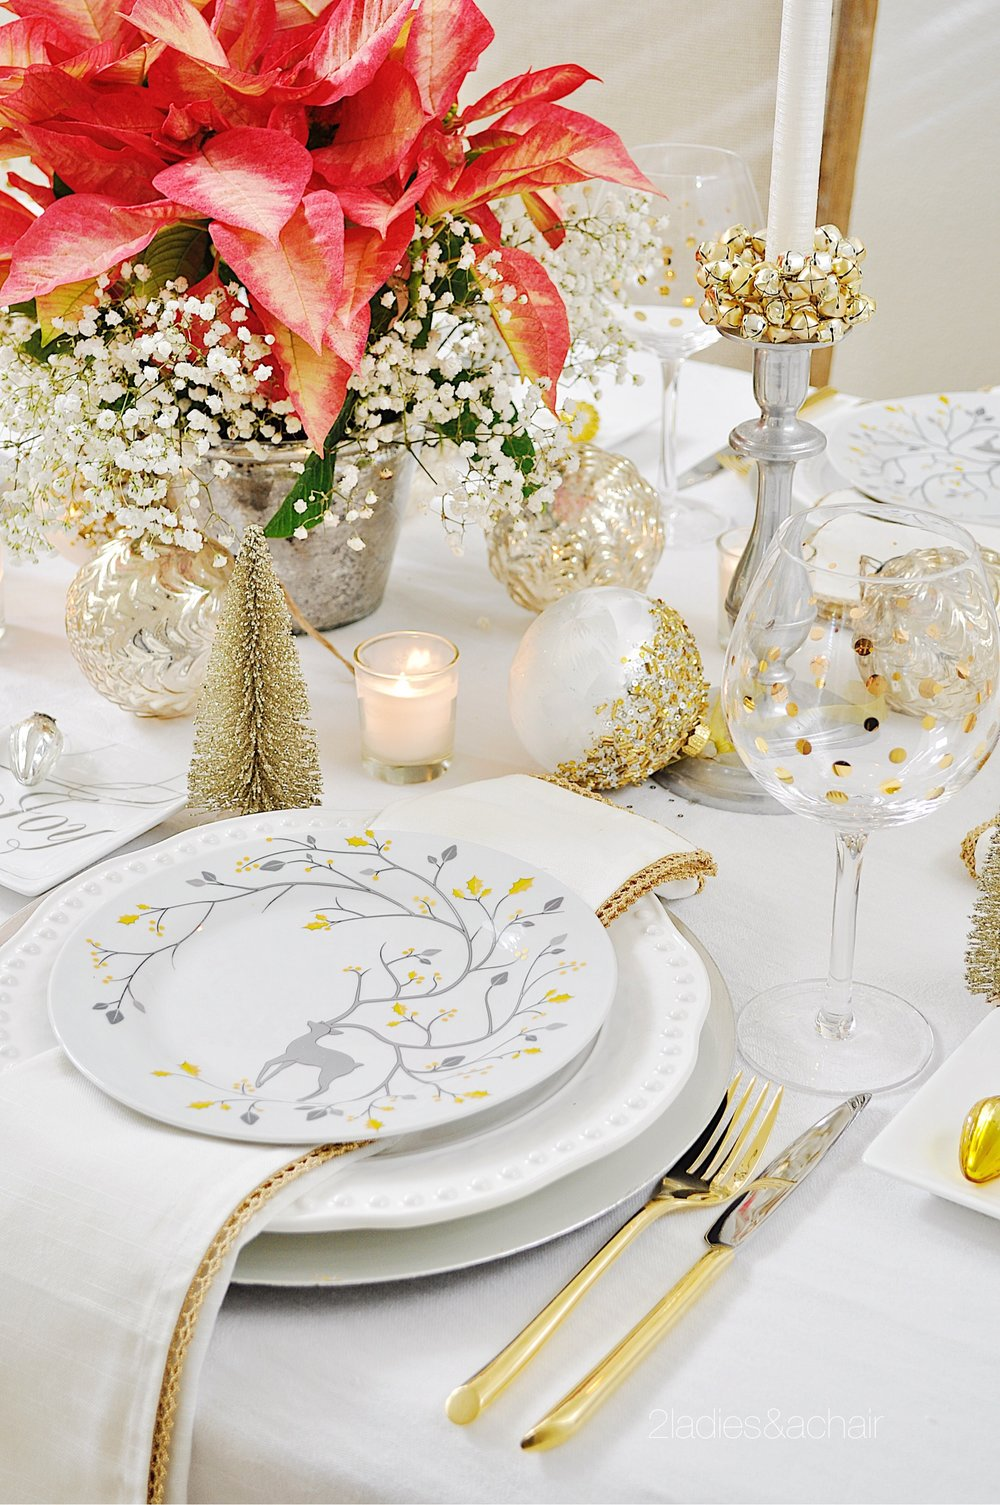 christmas tablescape ideas IMG_8758.JPG